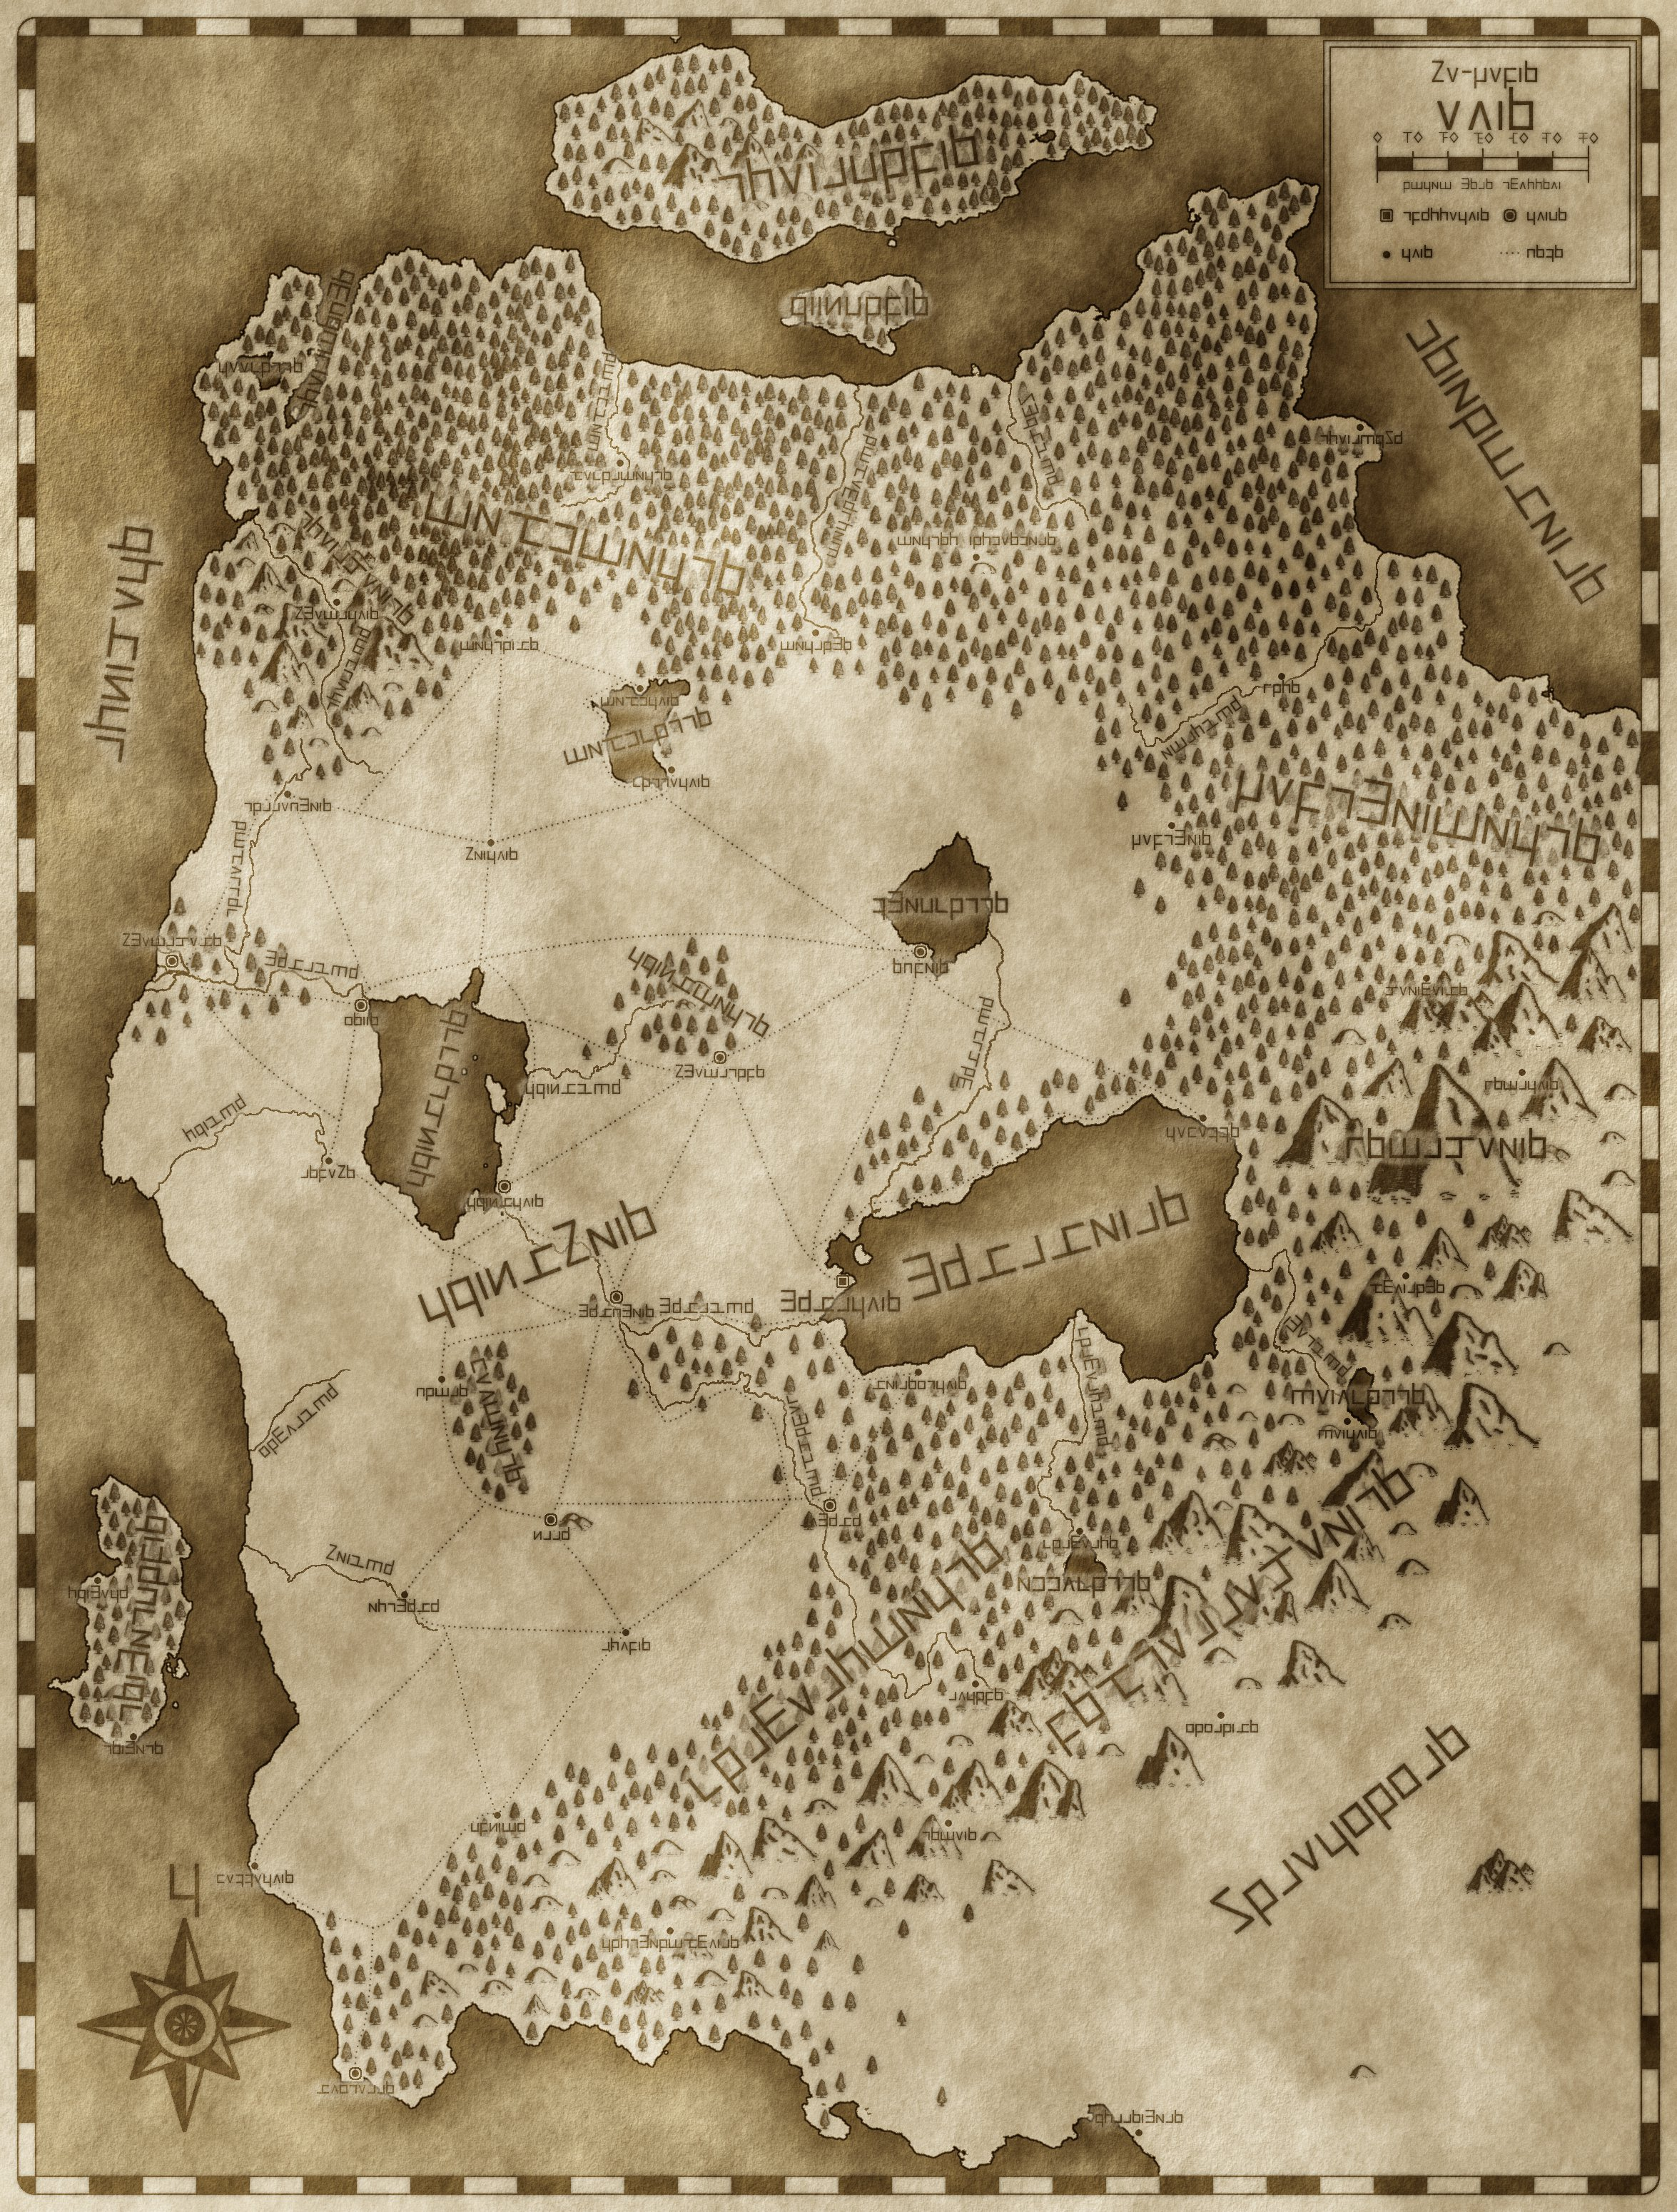 Eino Old Map, Eindo Rune Labels